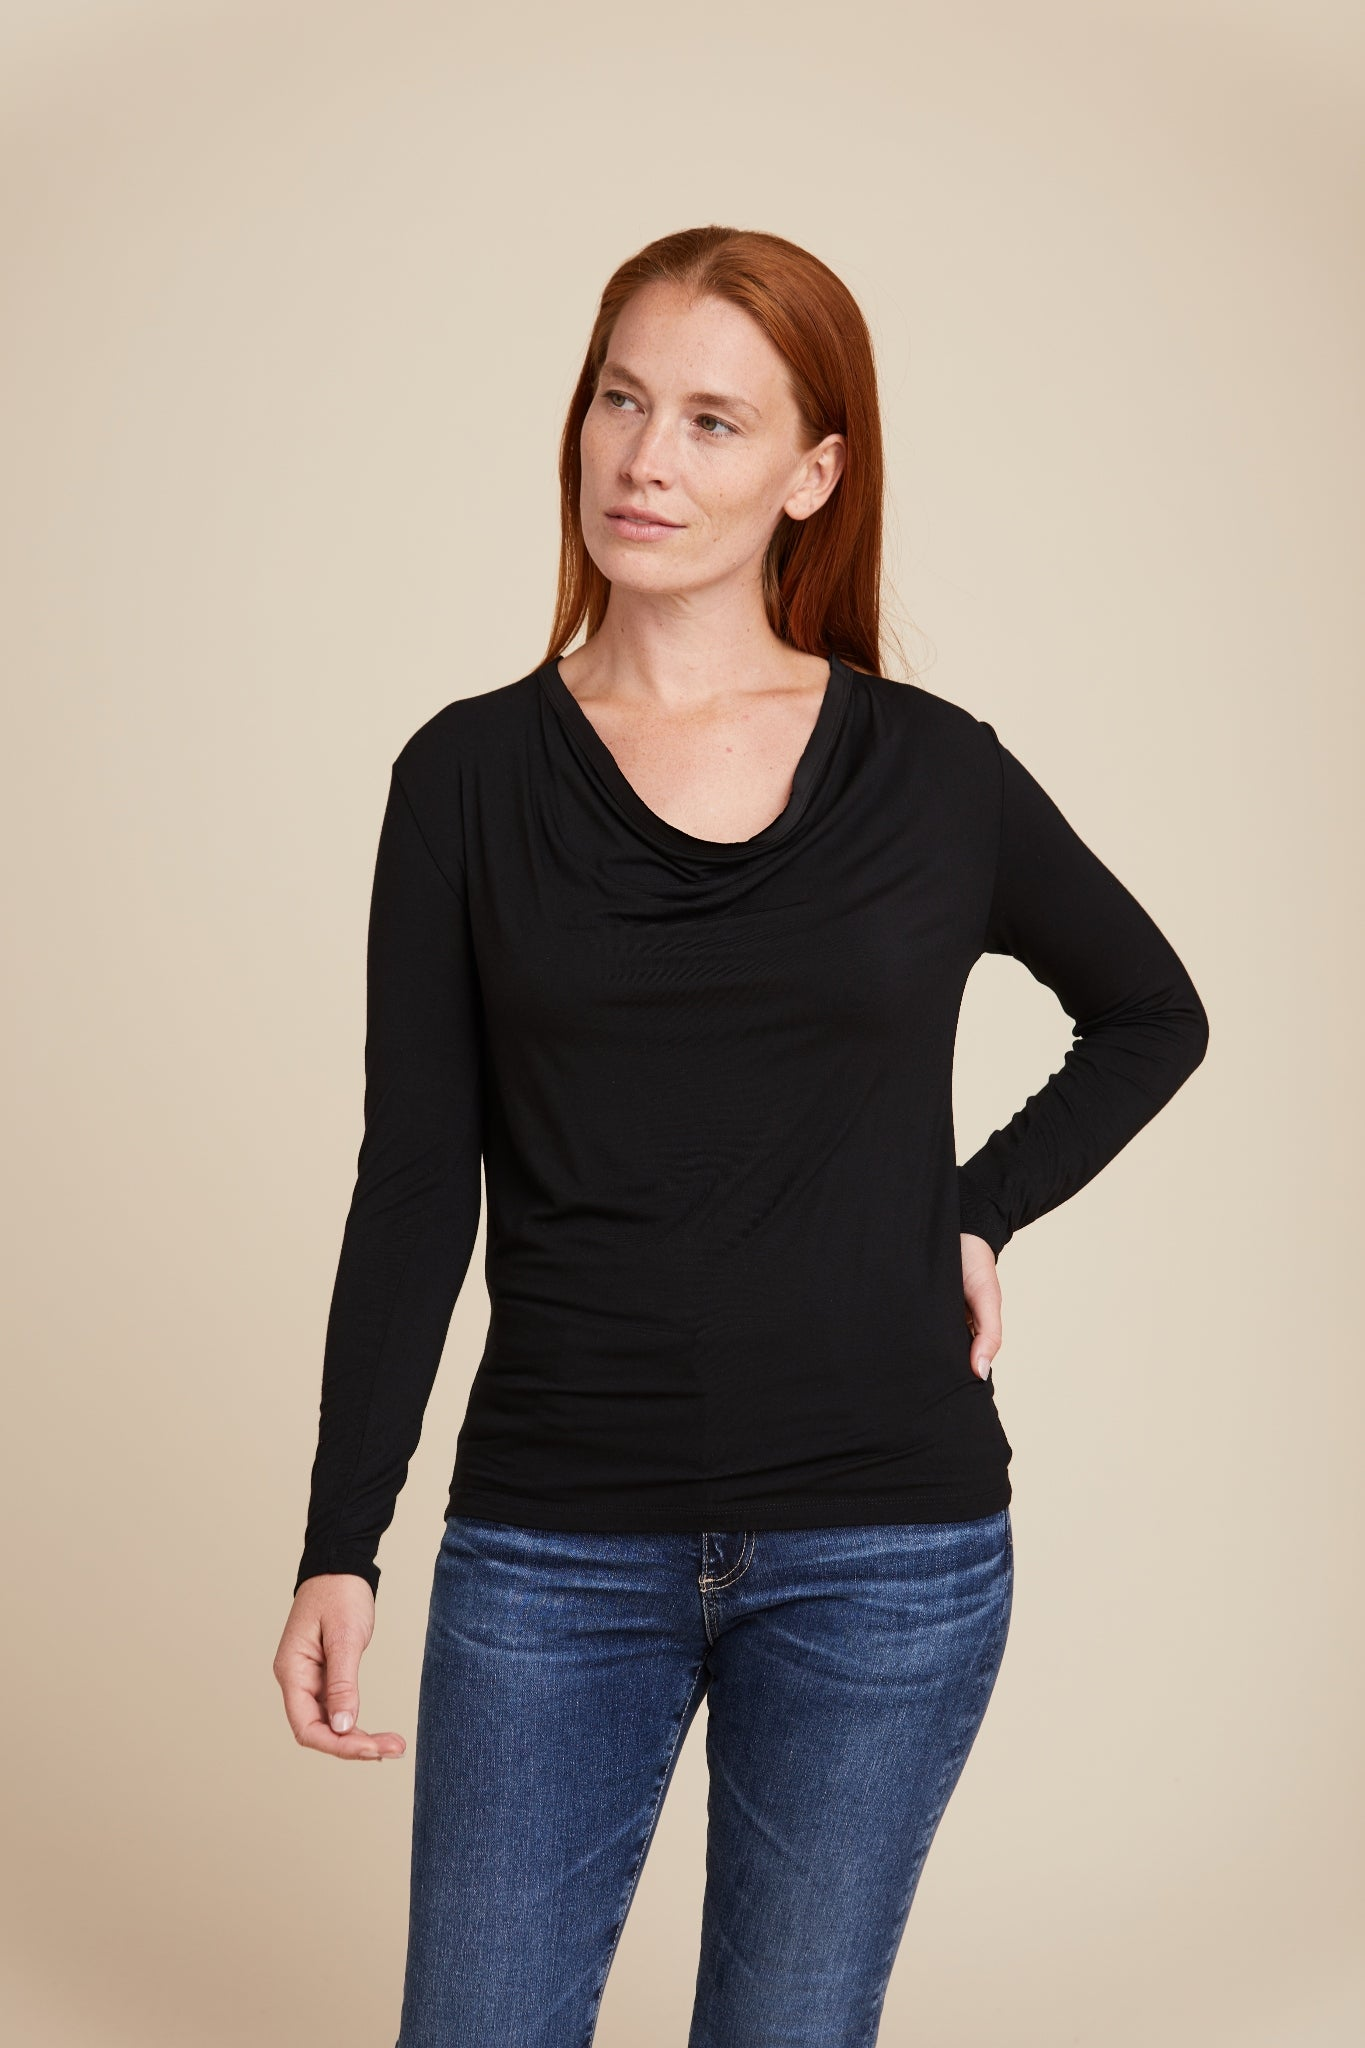 SOFT TOUCH L/S WITH DRAPE FRONT - MAJESTIC FILATURES